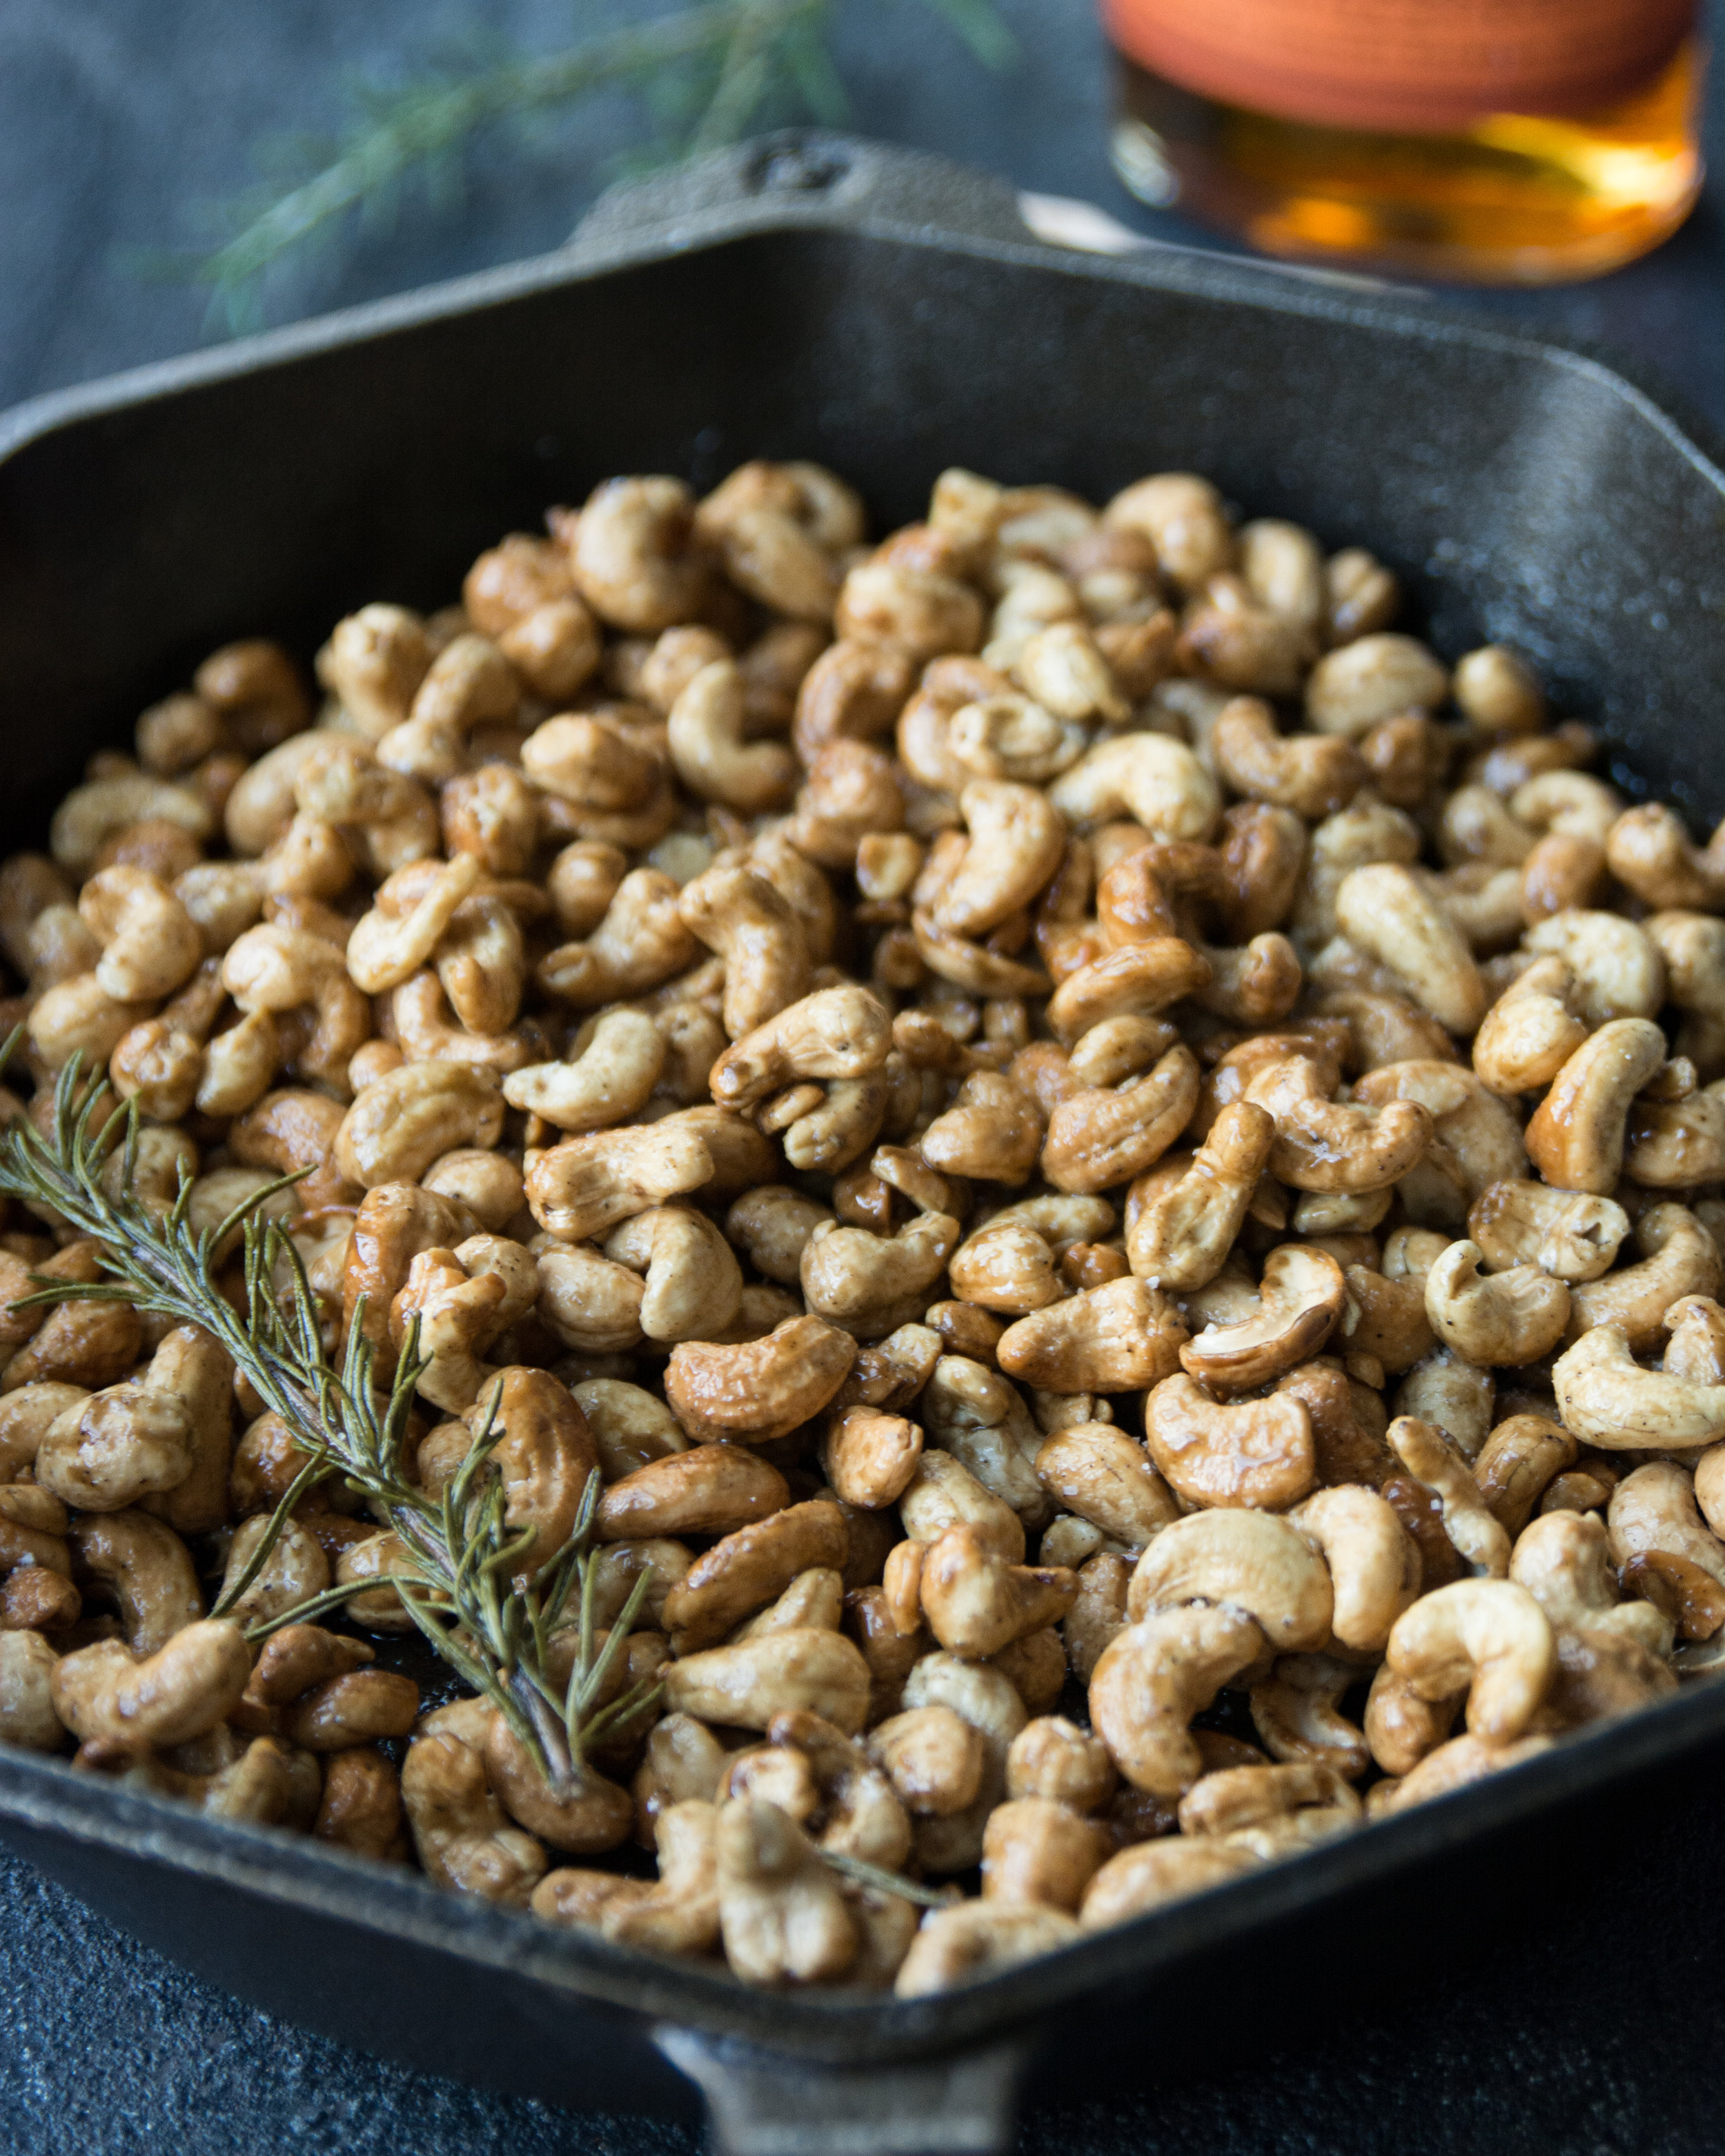 rosemary-and-vanilla-bourbon-spiked-nuts